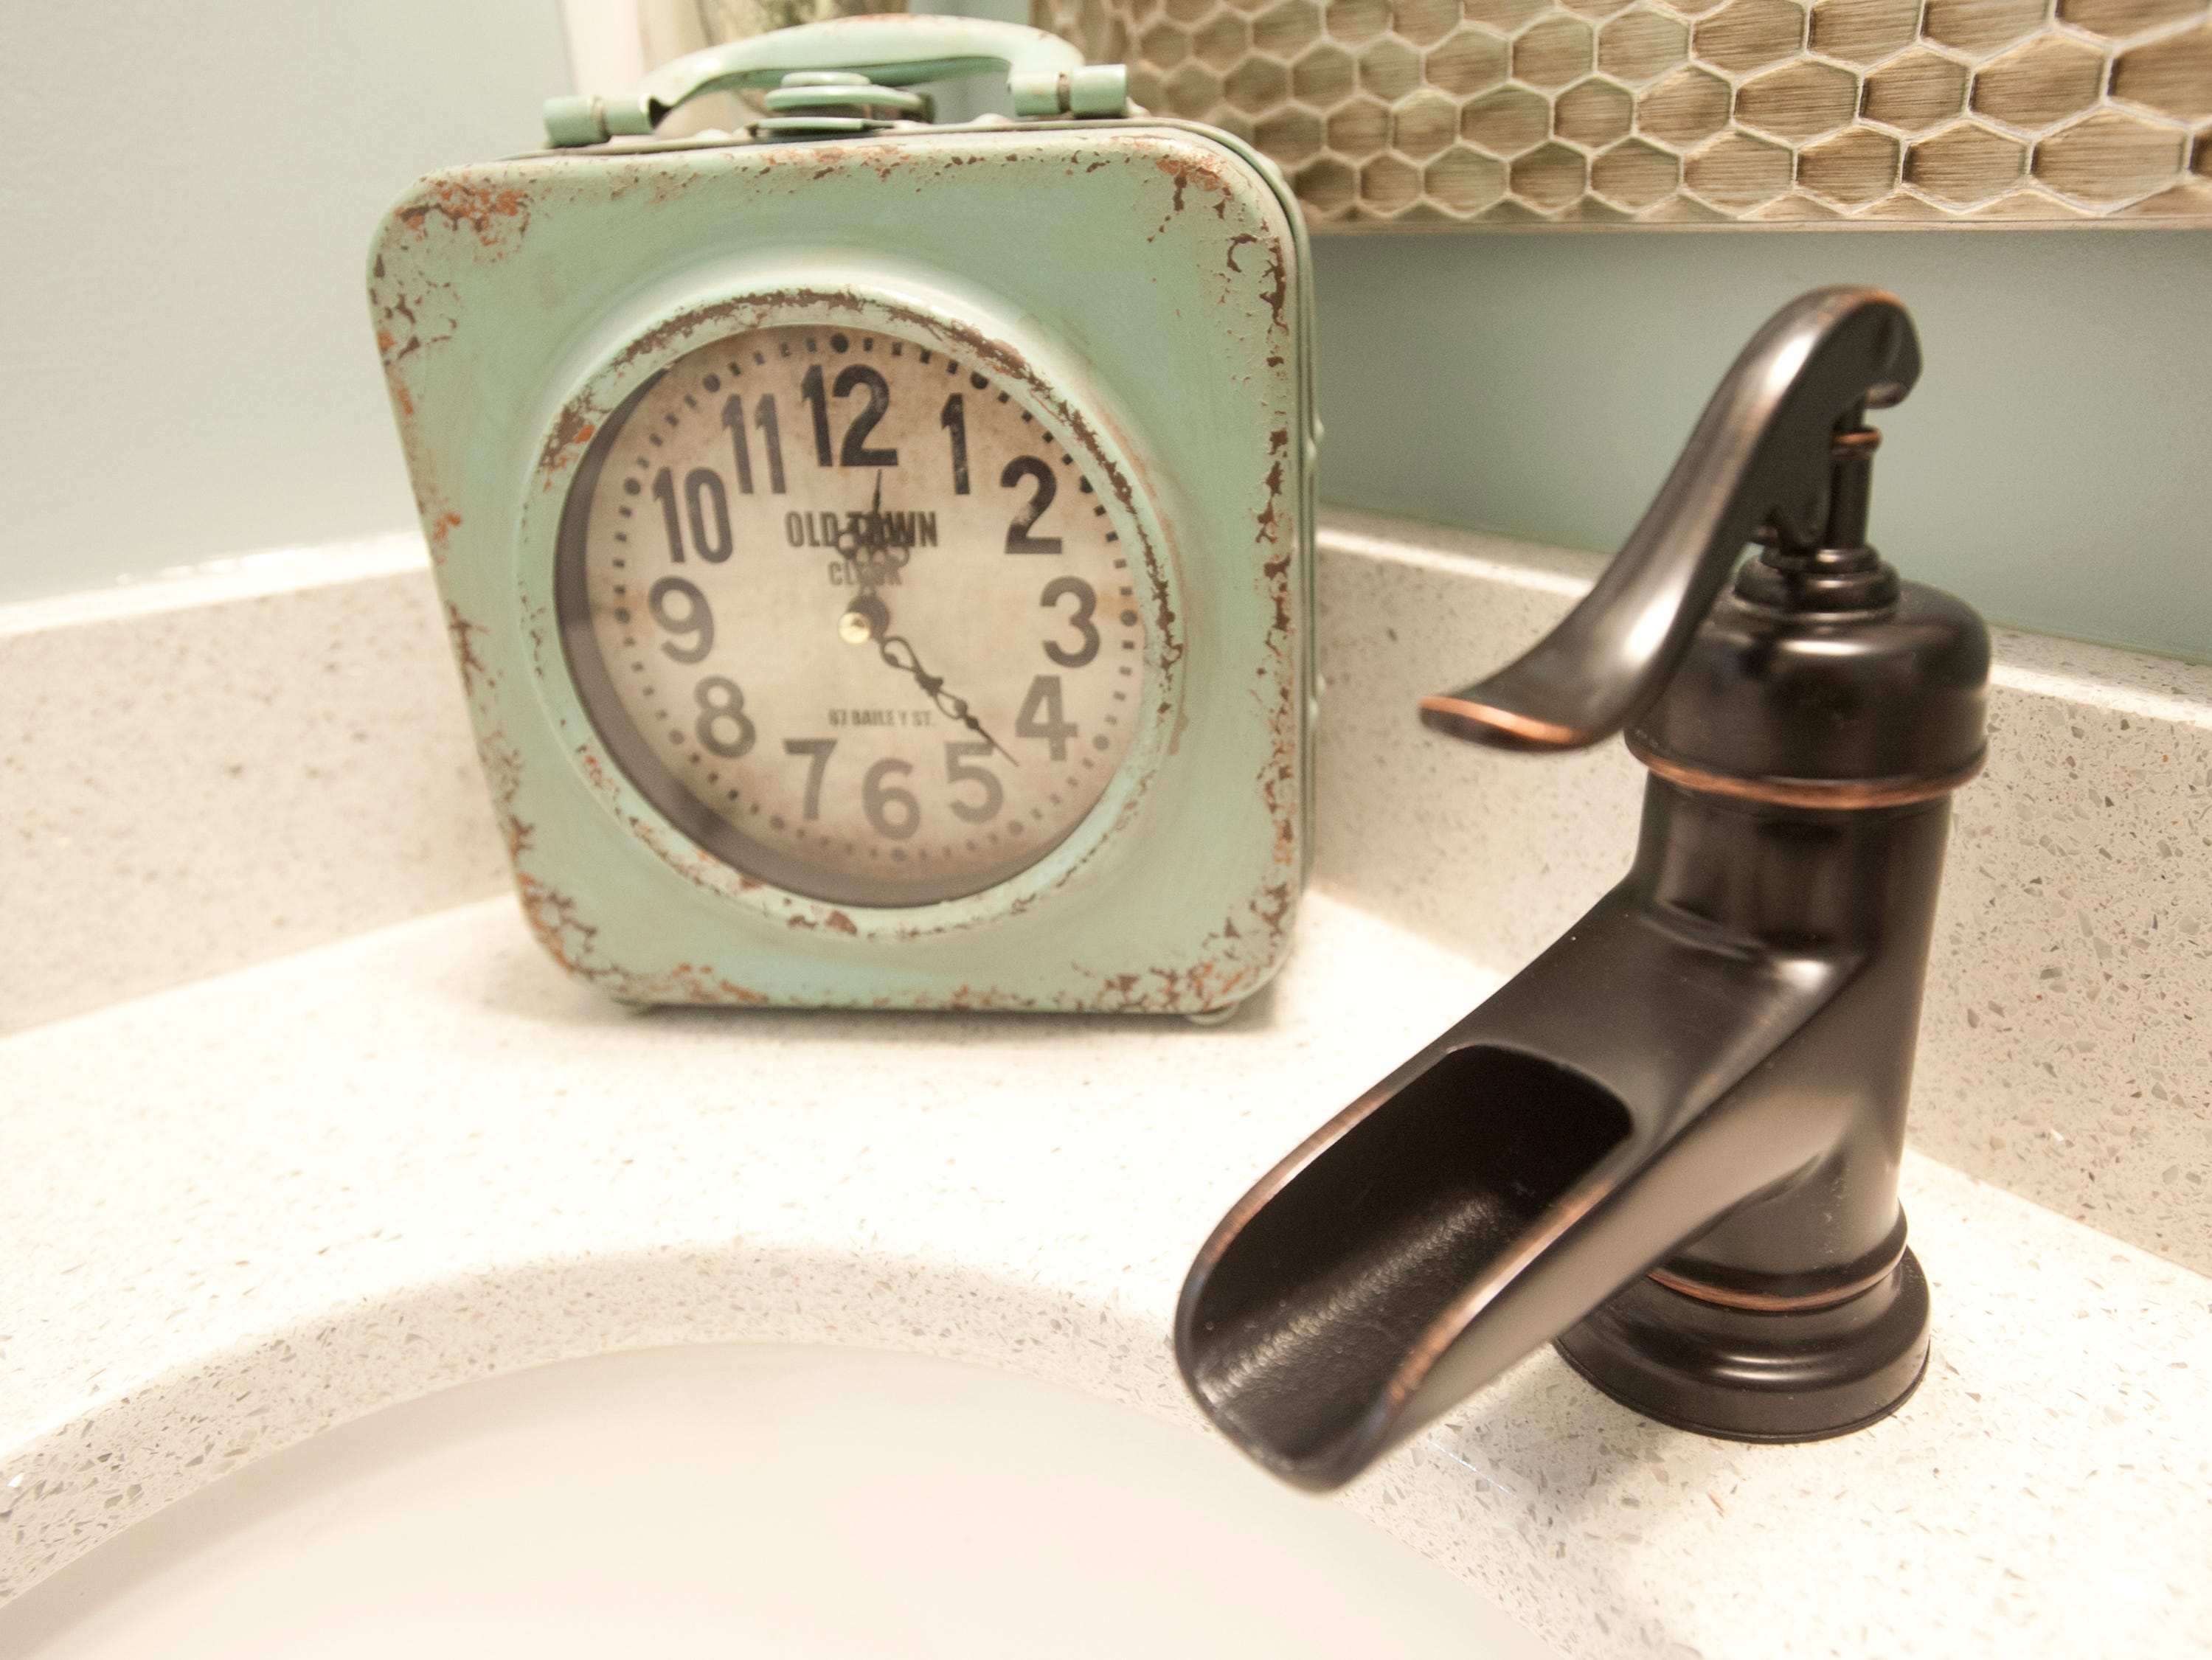 The sinks in the bathrooms employ farm water-pump-styled faucets including this one in the half-bath opposite the mud room. An Old Town Clock decorates the sink.